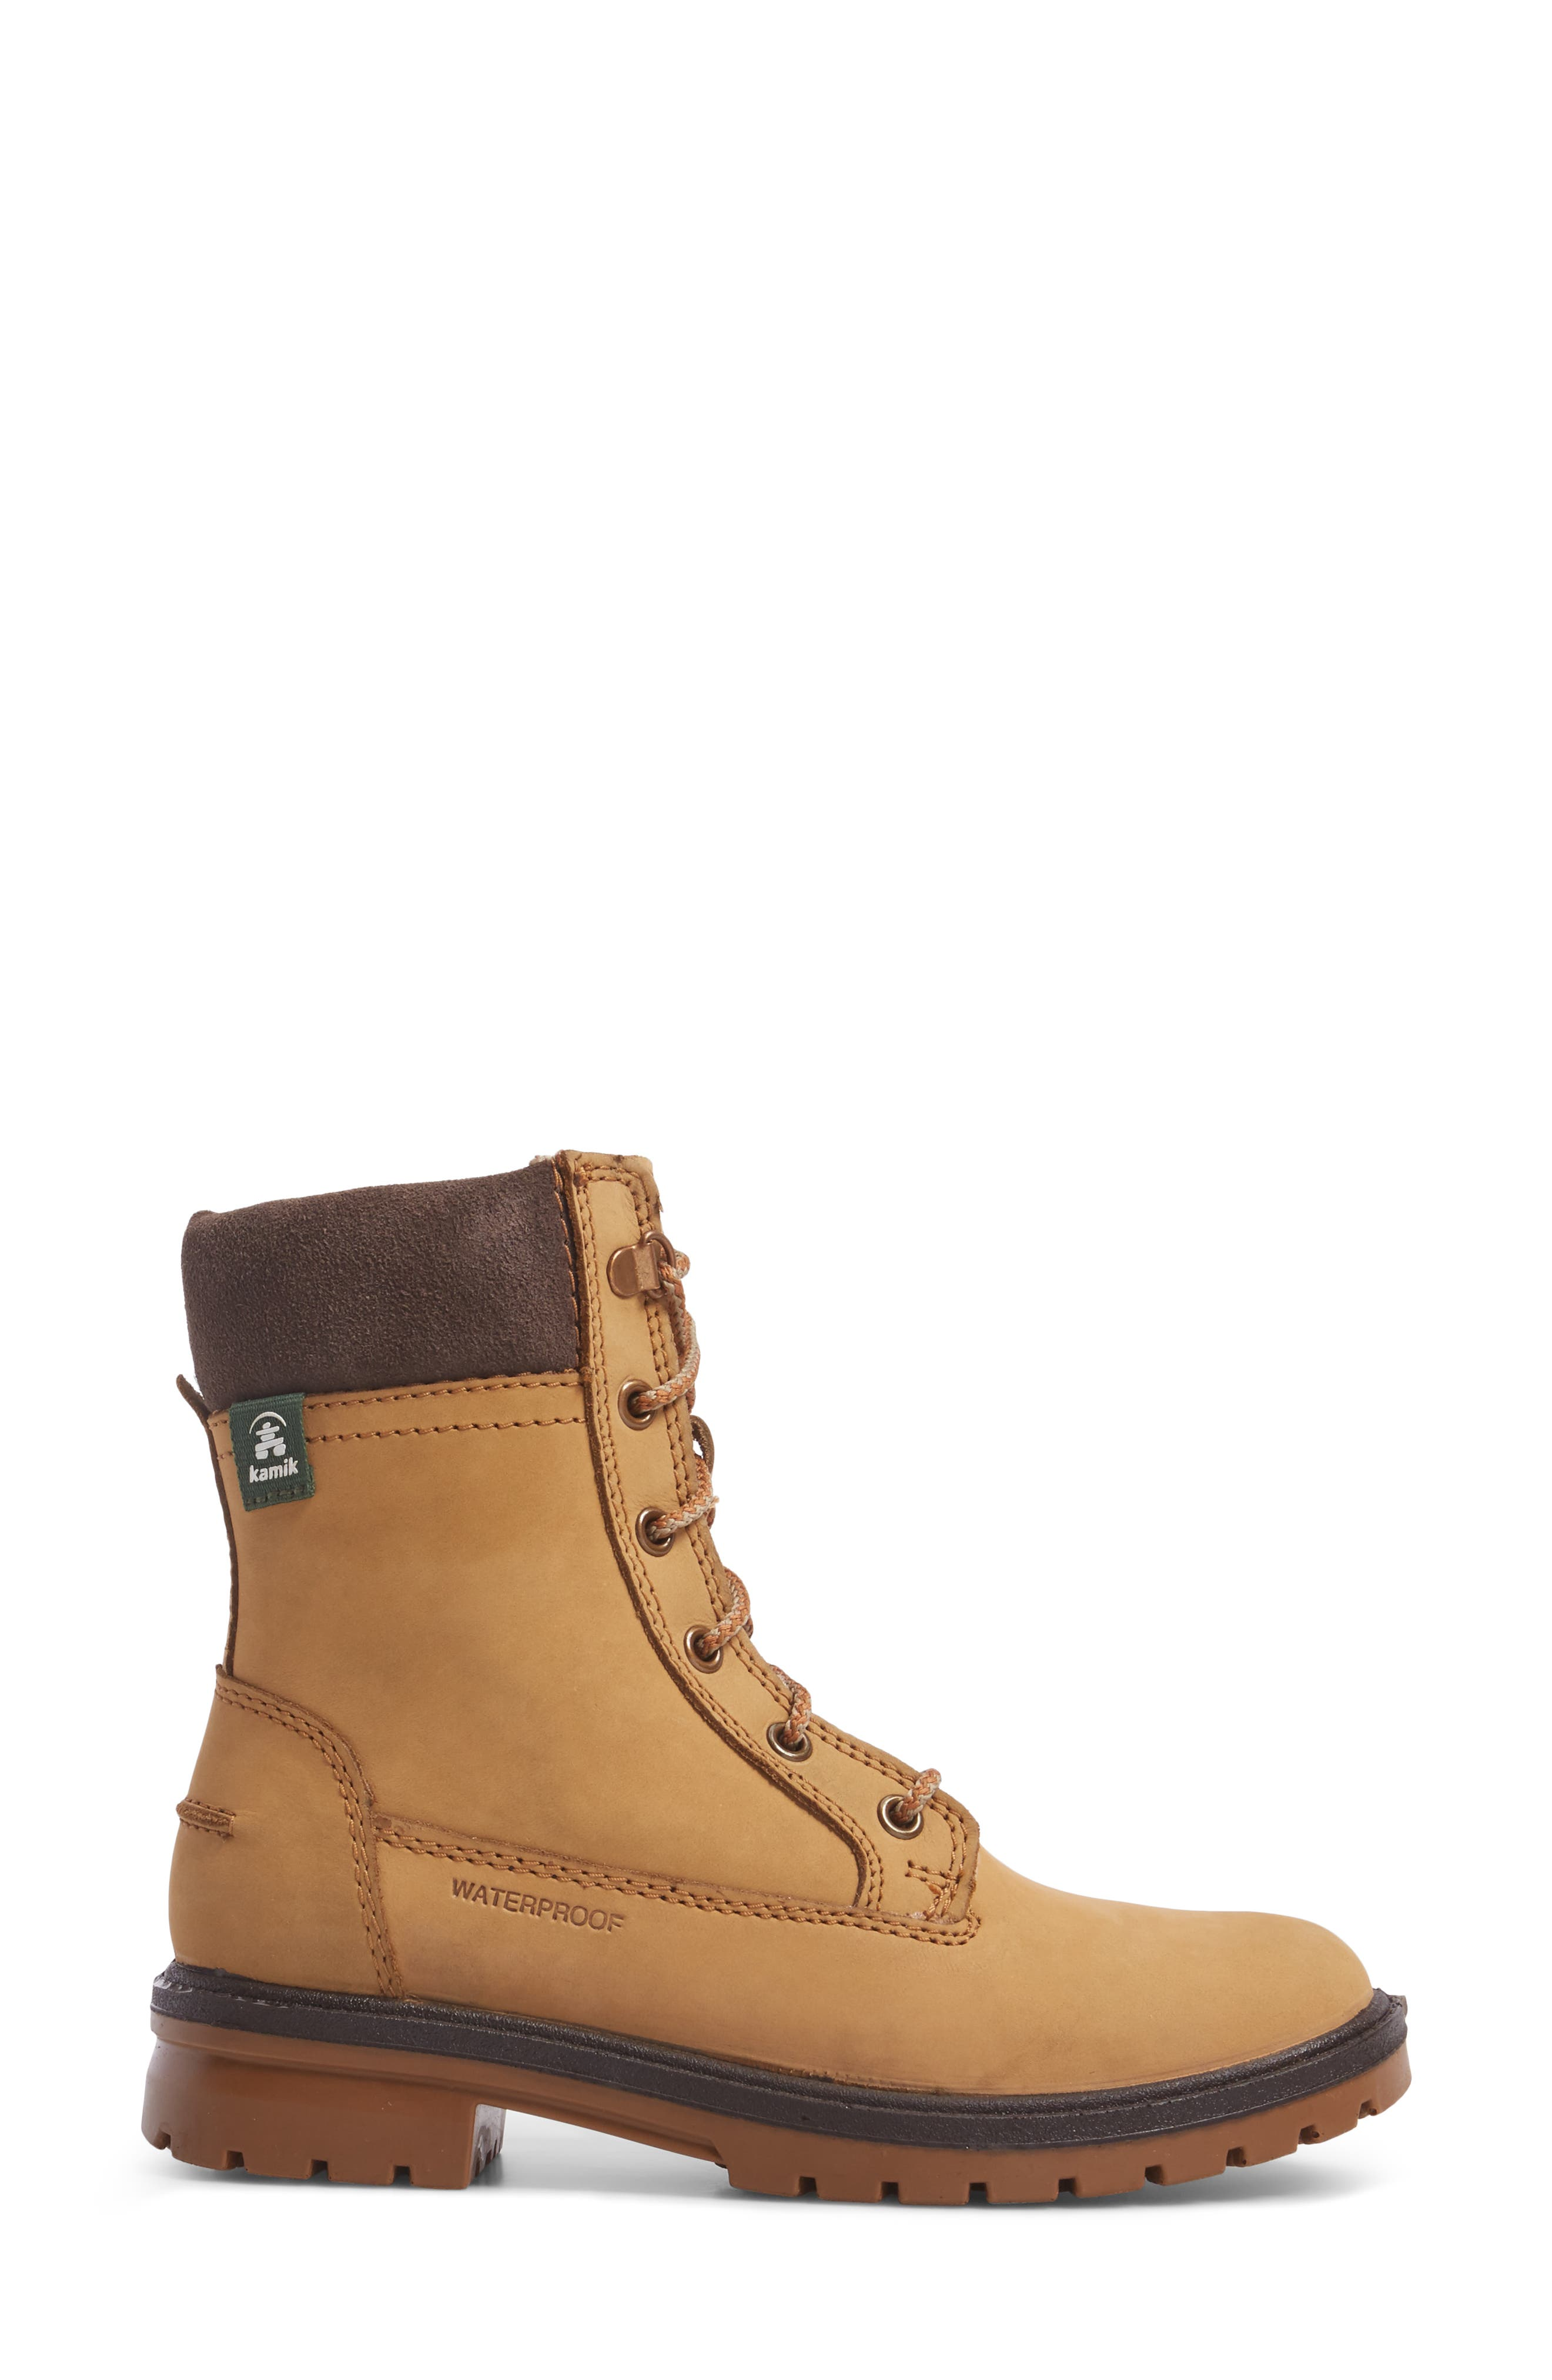 Rogue 5 Waterproof Boot,                             Alternate thumbnail 3, color,                             Honey Leather